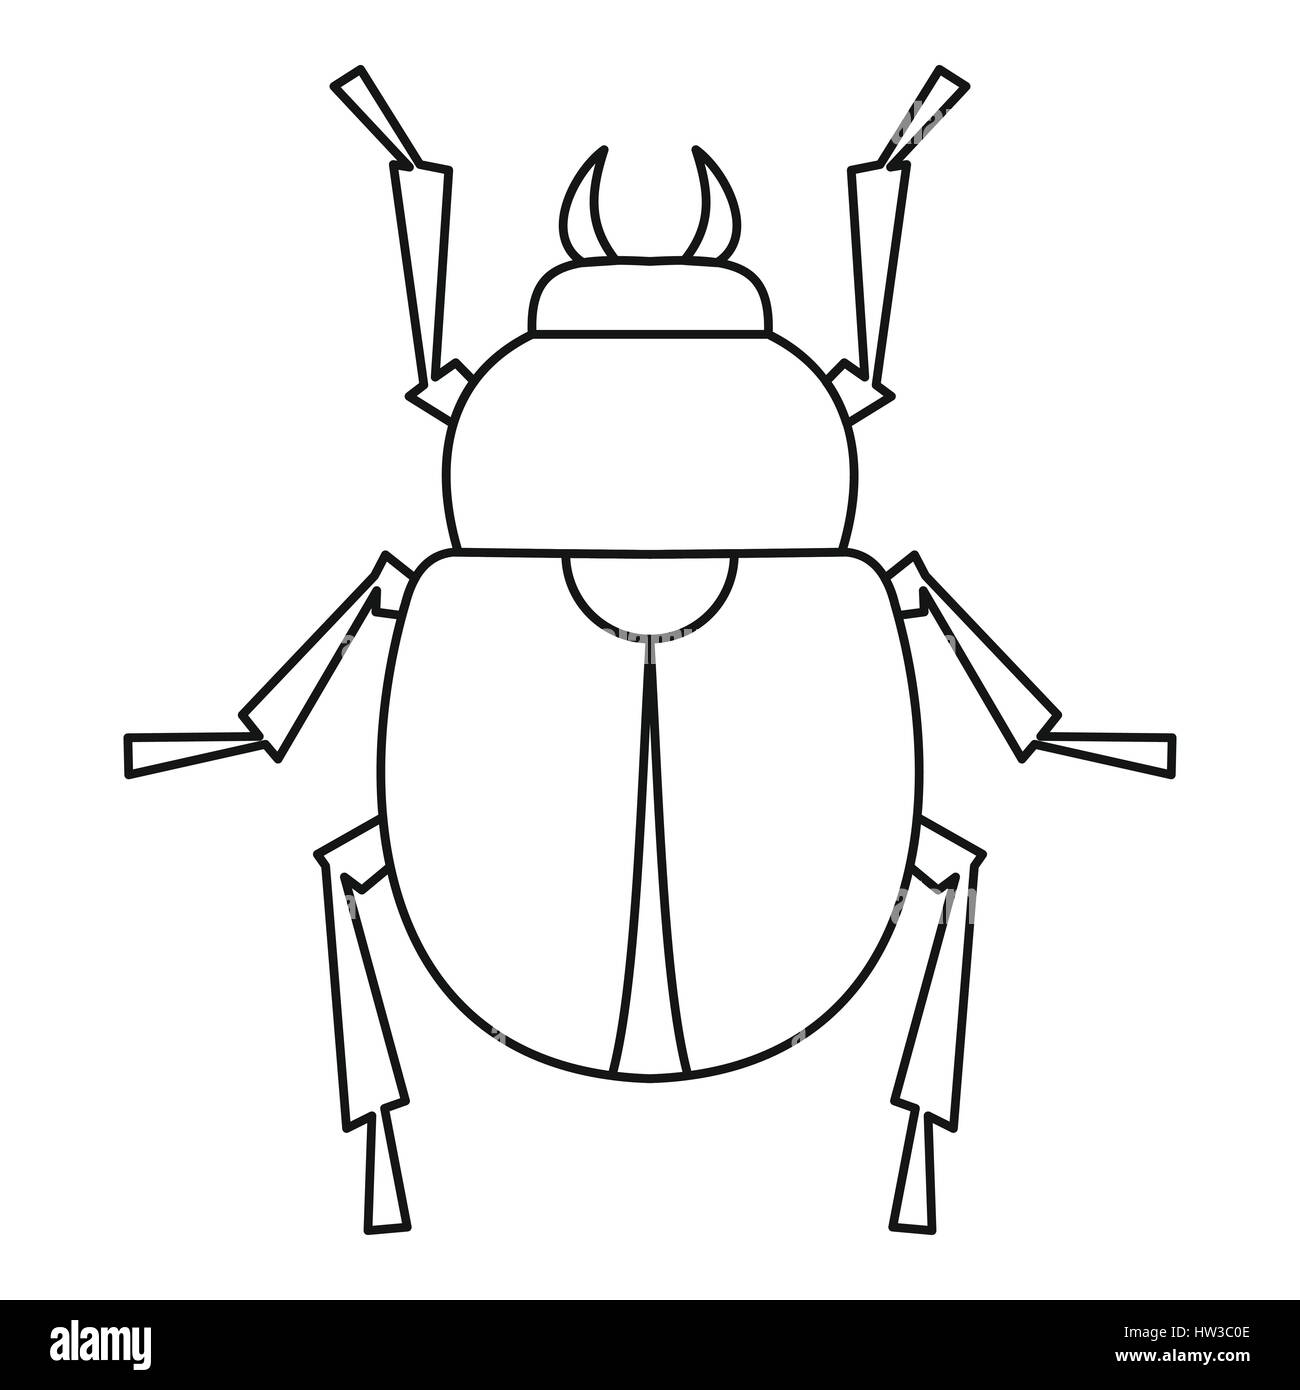 hight resolution of egyptian scarab beetle stock photos u0026 egyptian scarab beetle stockscarab beetle icon outline style